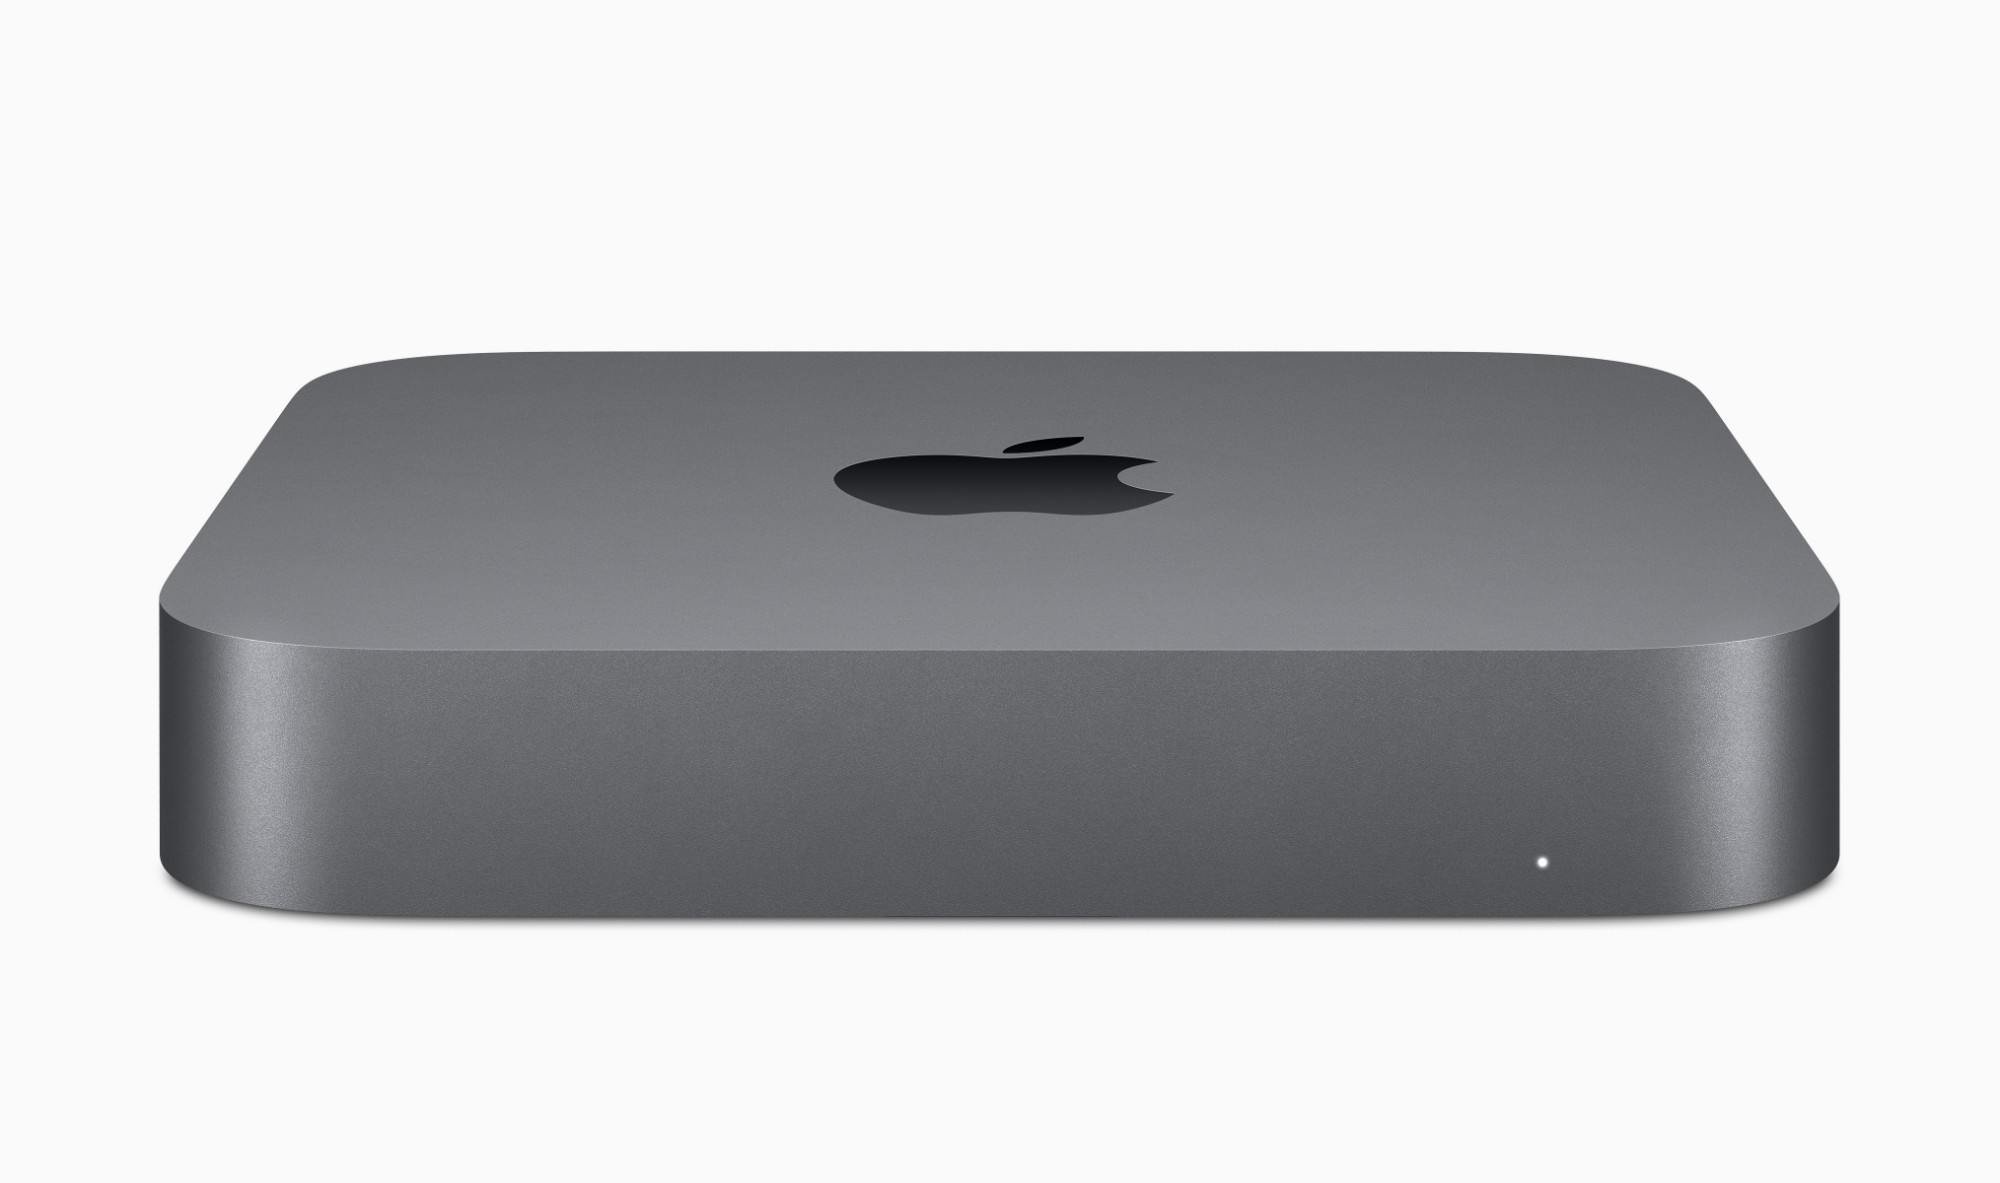 Mac Mini 8g Qci3 3.6GHz 256GB 8GB Mos In (mxnf2b/a)